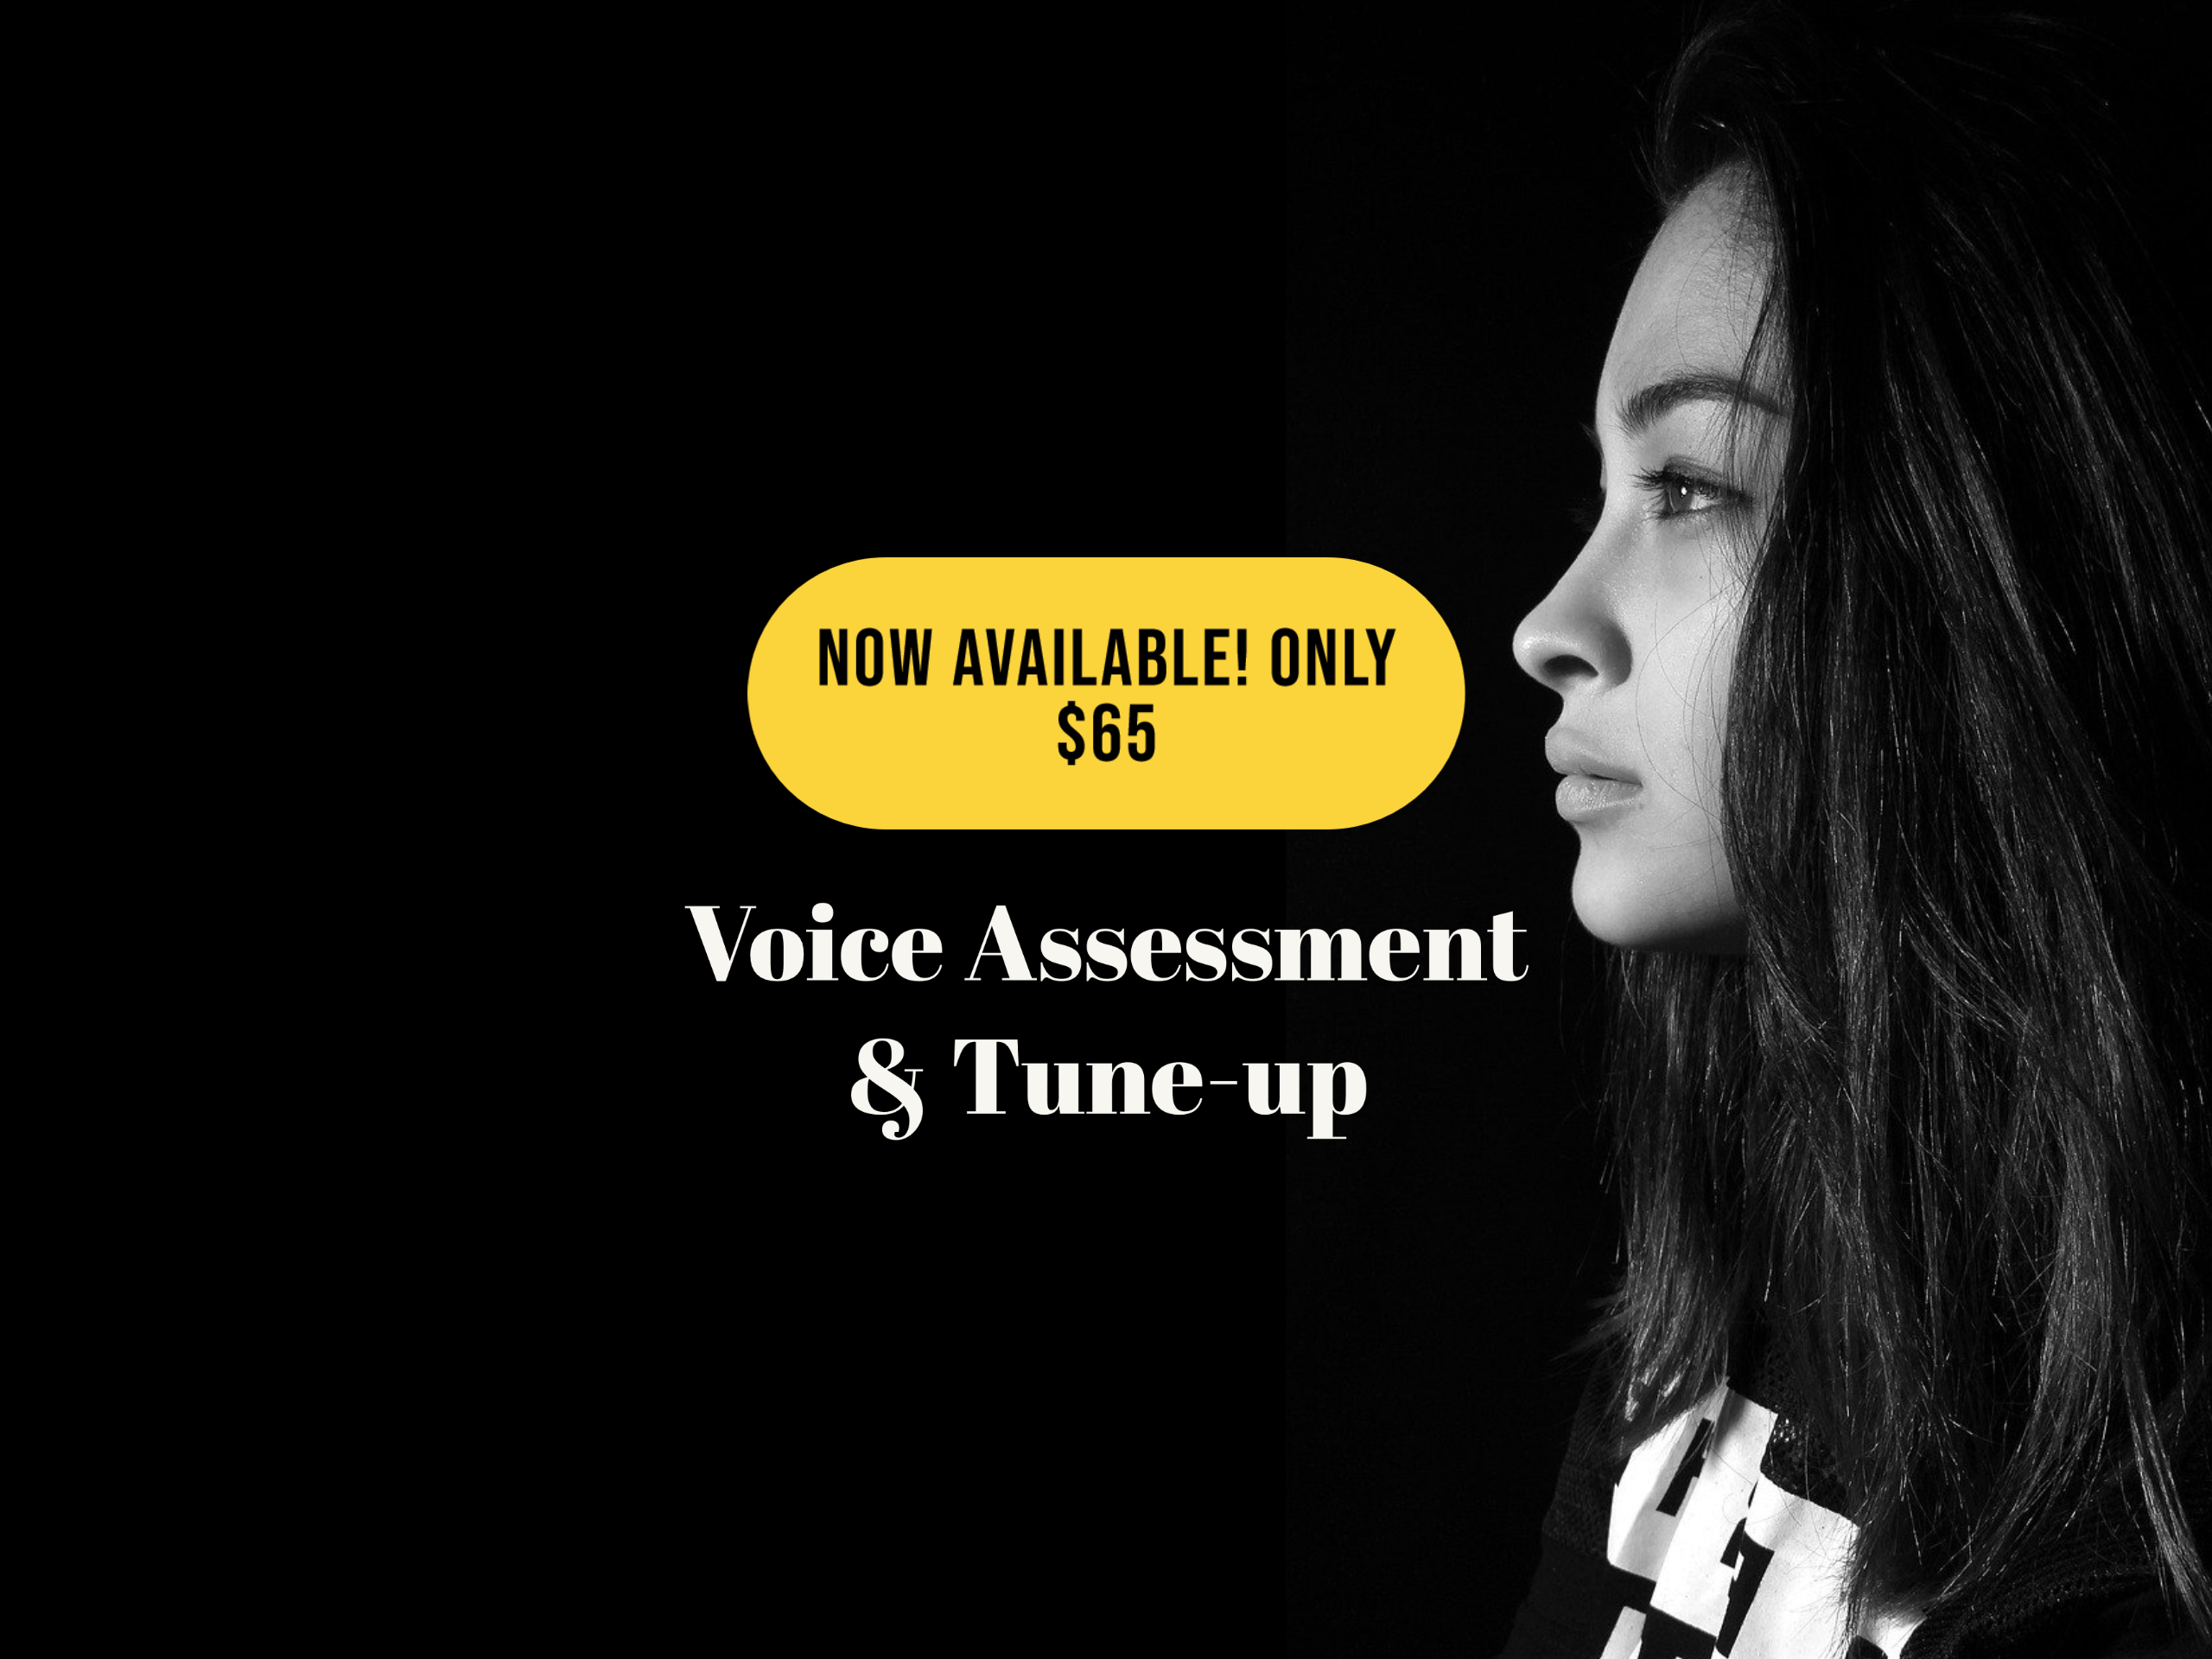 Voice Assessment + Tune-up